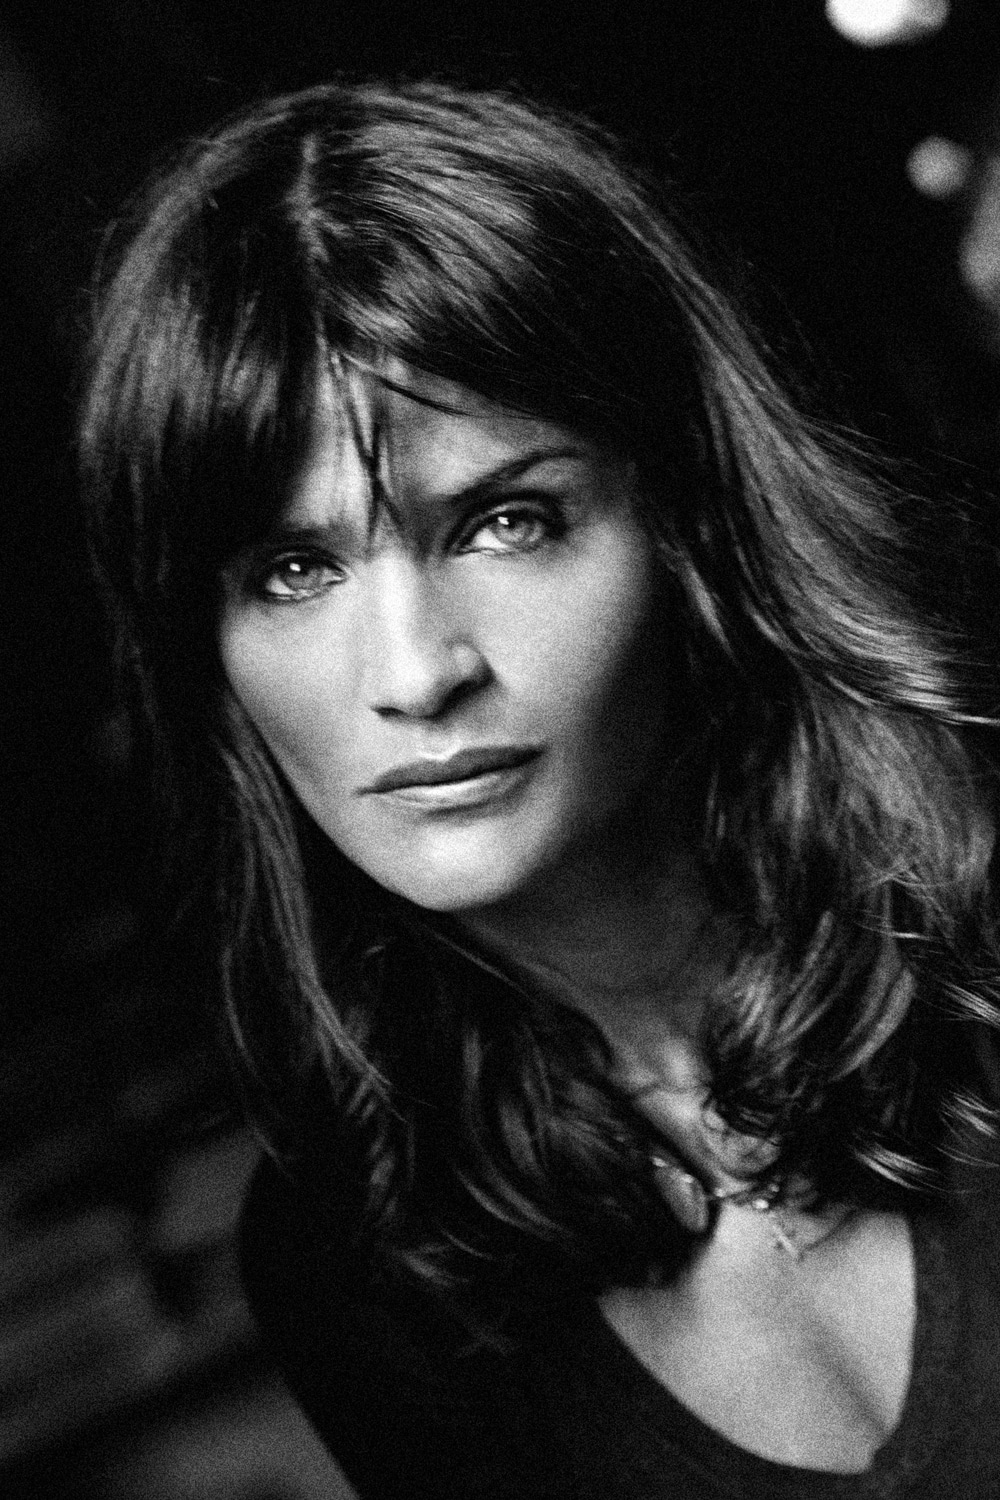 HELENA CHRISTENSEN PHOTOGRAPHED BY BARRY MCCALL FOR PHO20GRAPHY.